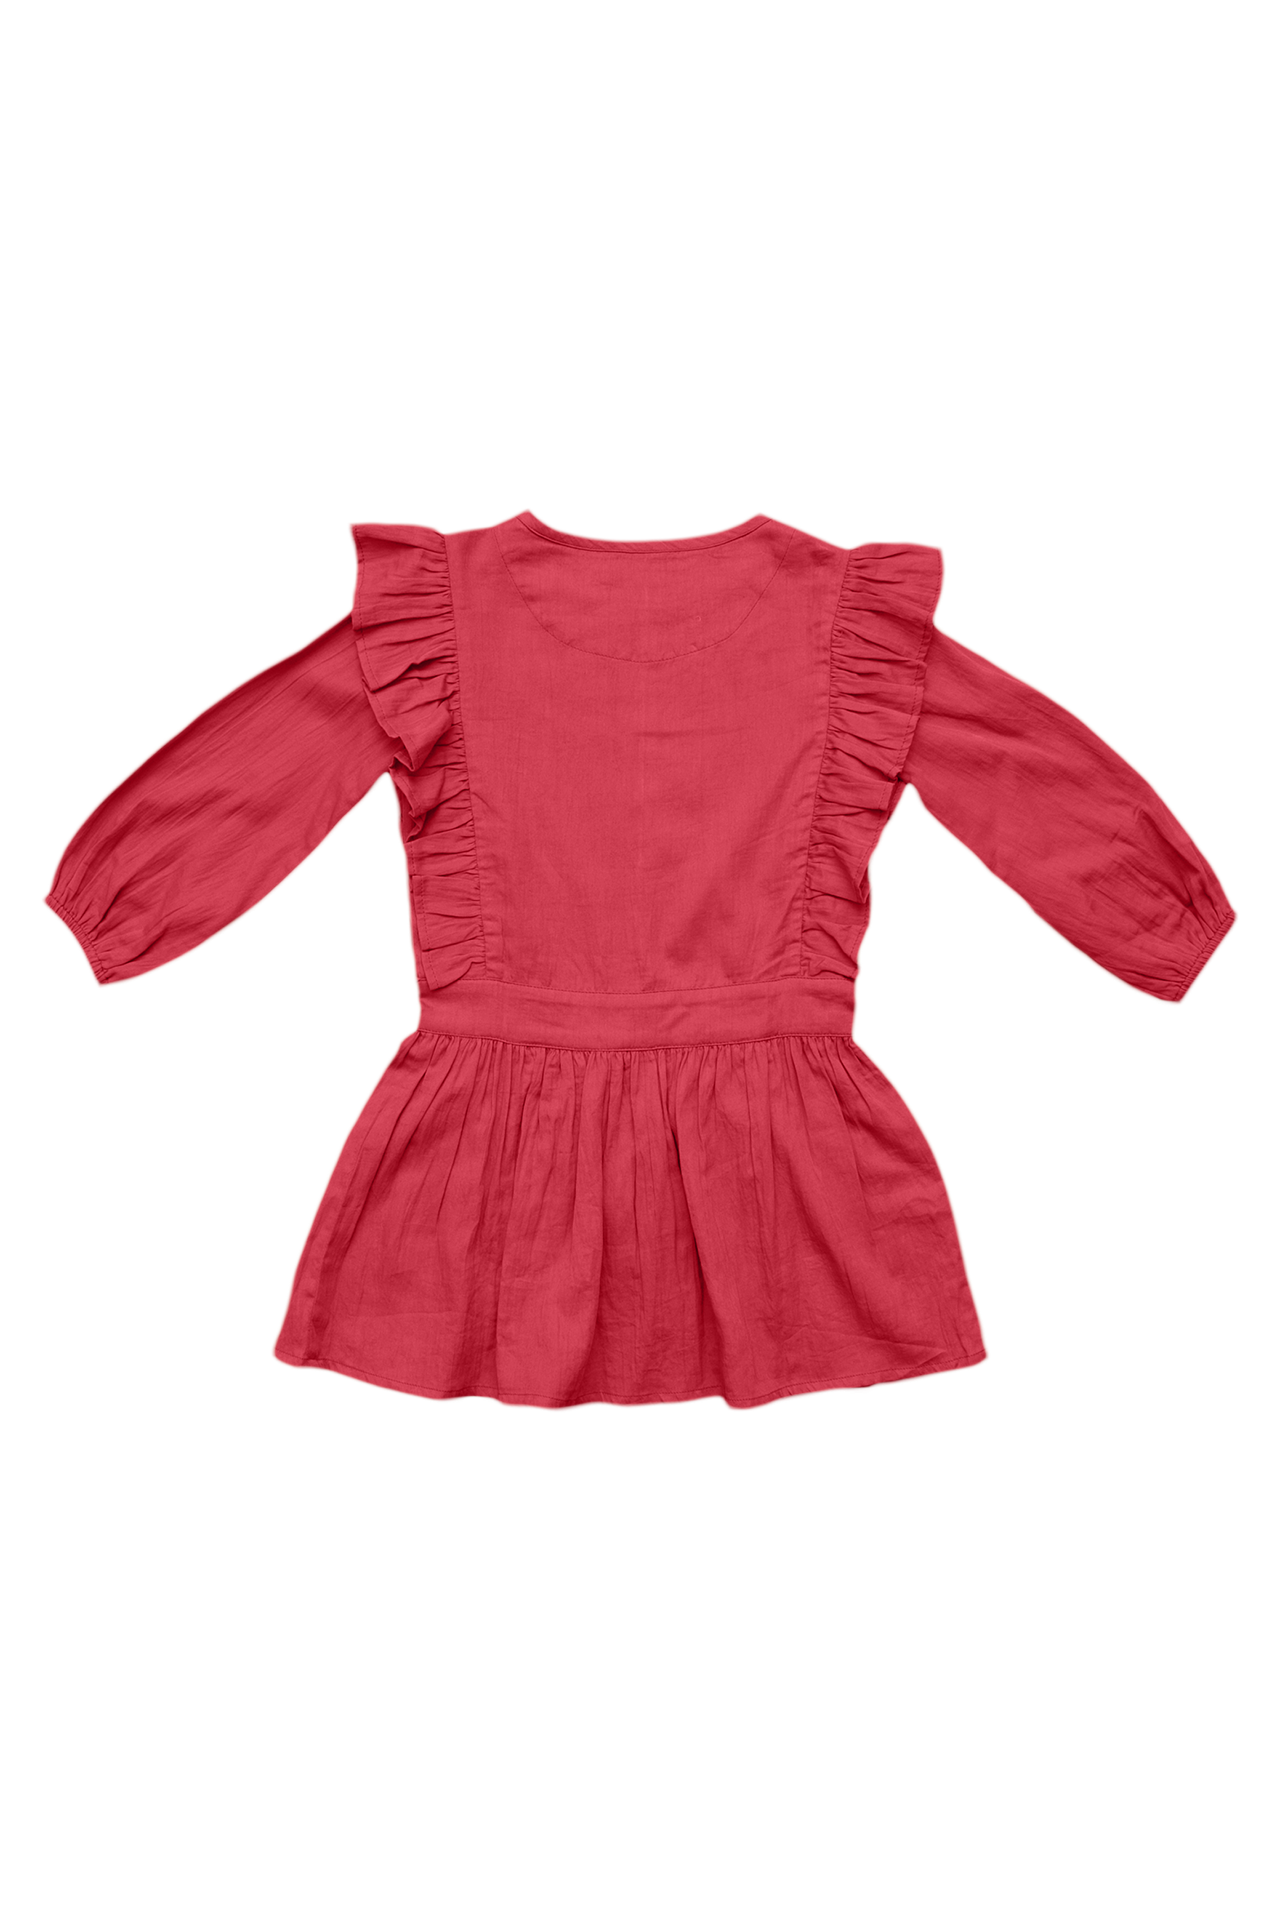 3/4 sleeve dress with ruffle detail